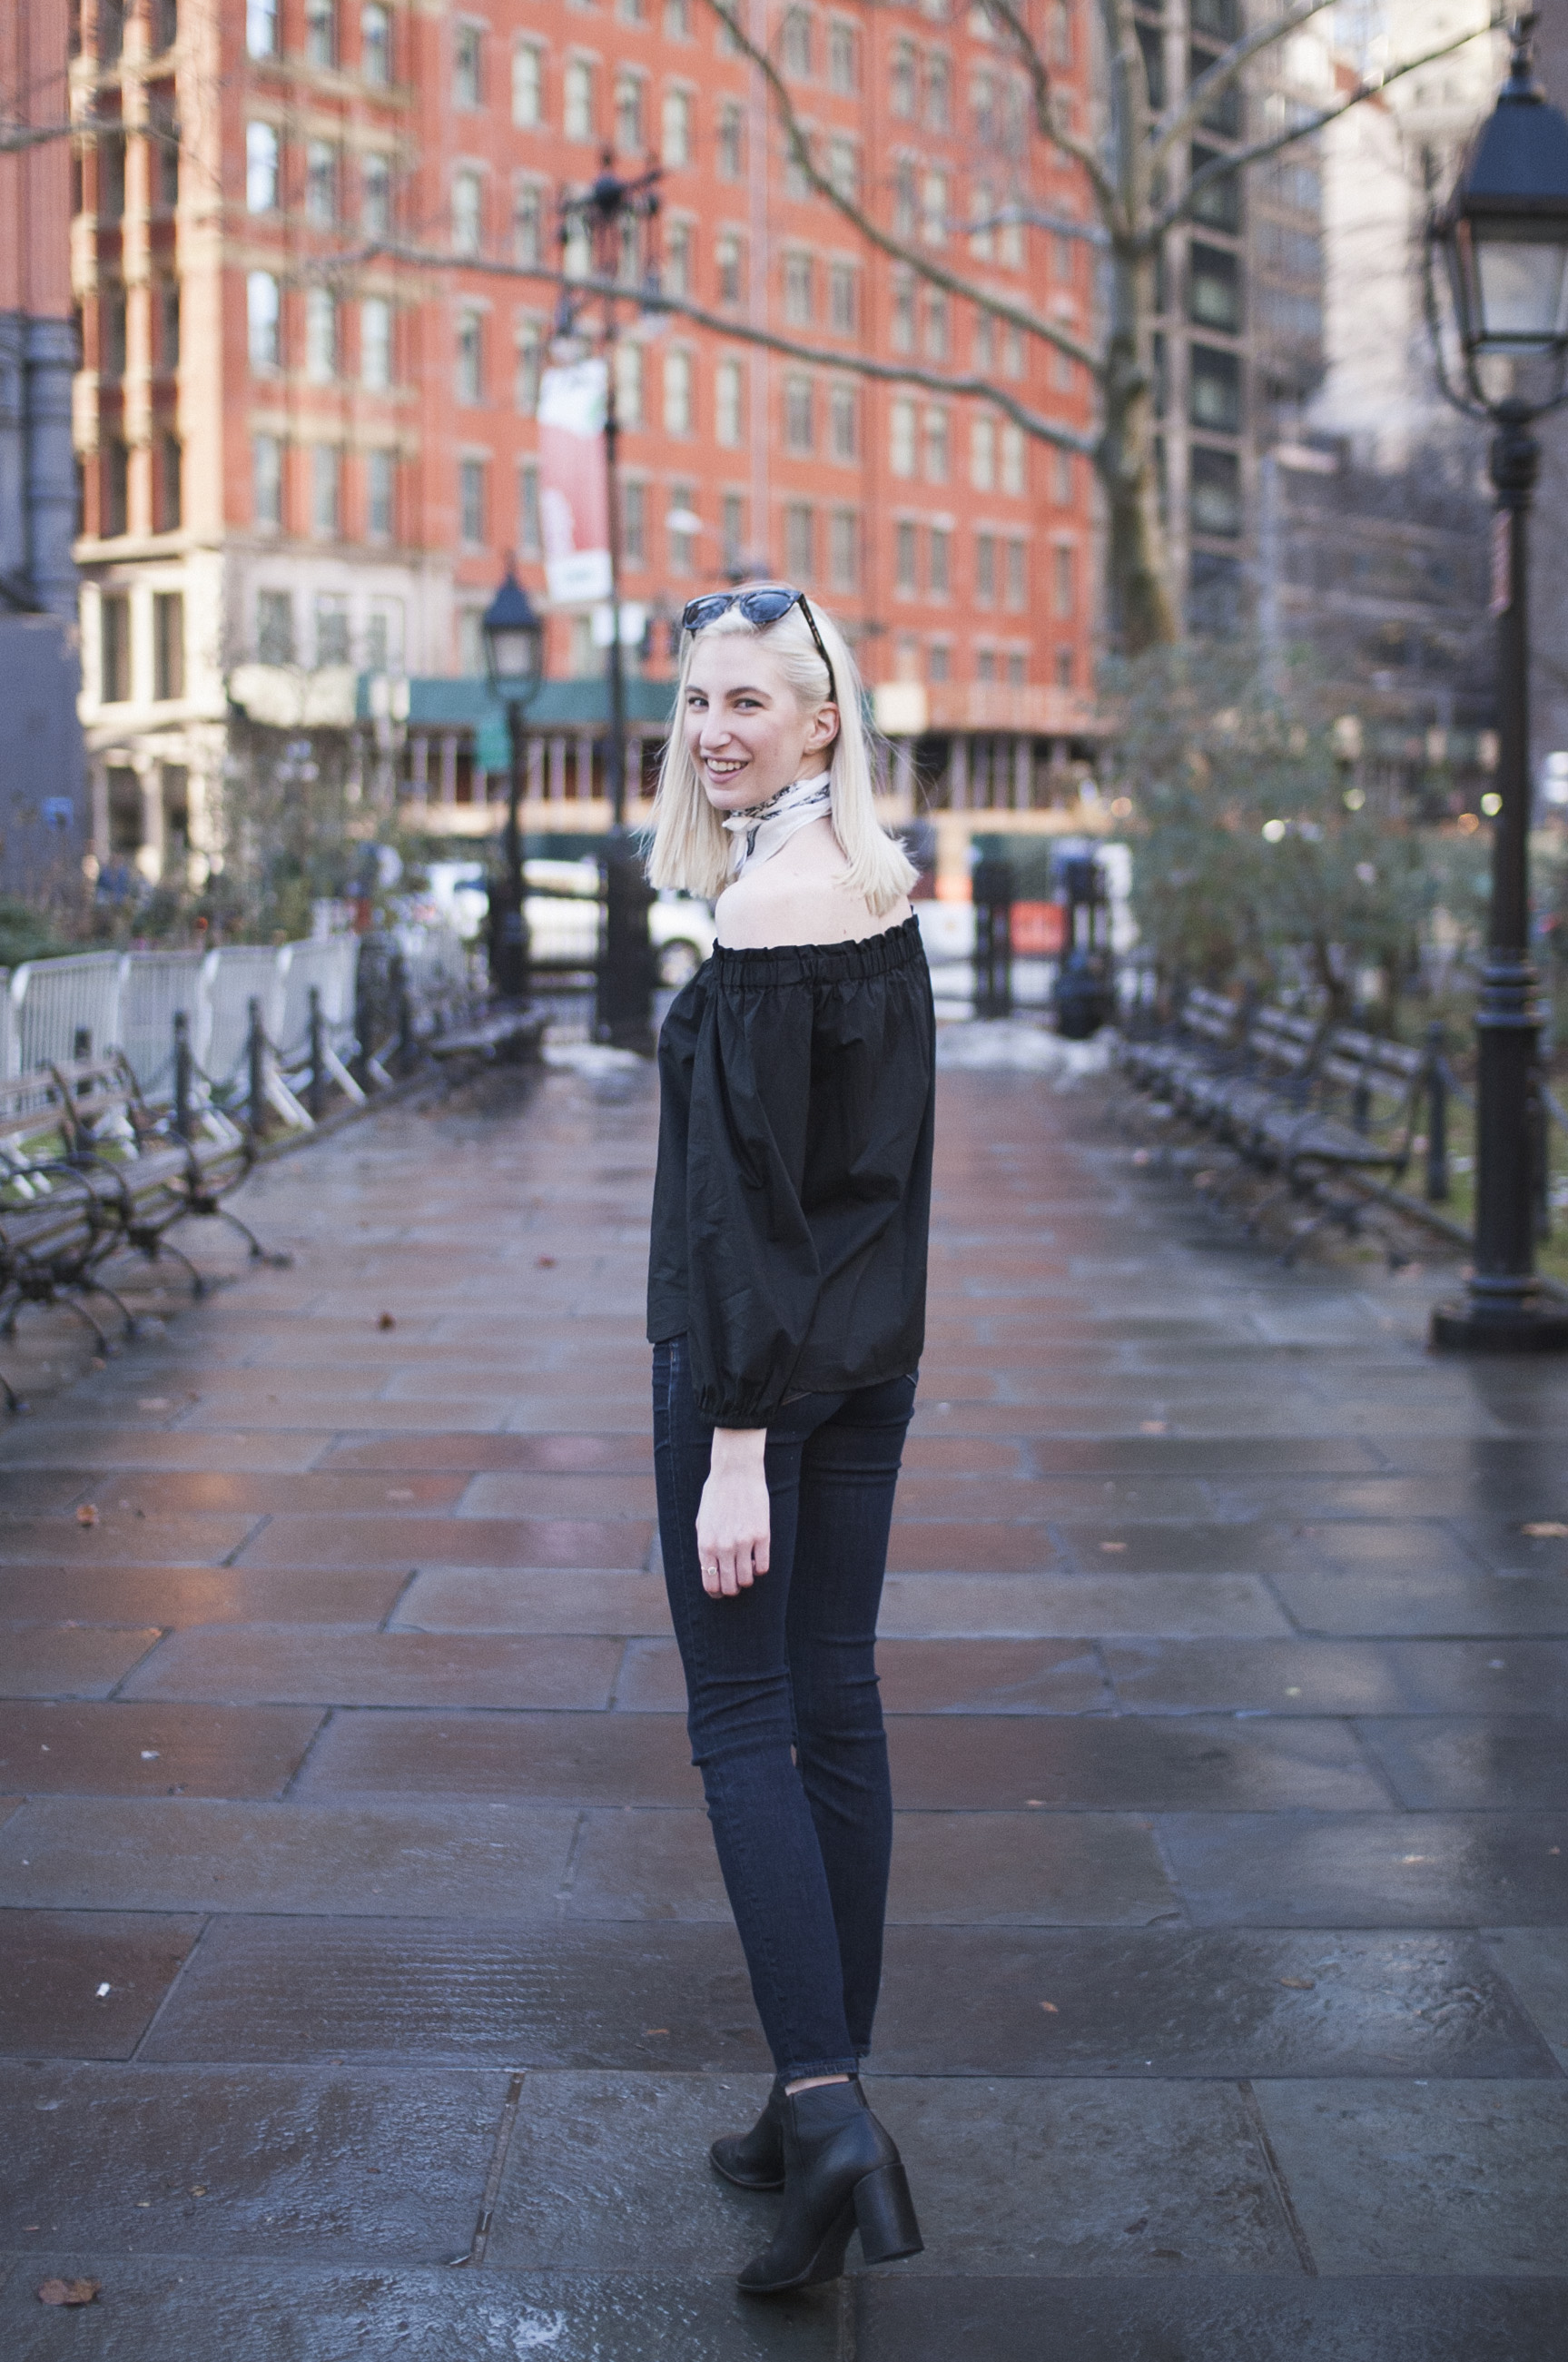 Audra Koch - J.Crew black longsleeve off the shoulder top, lookout high rise jeans, black block heel ankle boots, white bandana neck scarf, ear crawlers from Rocksbox